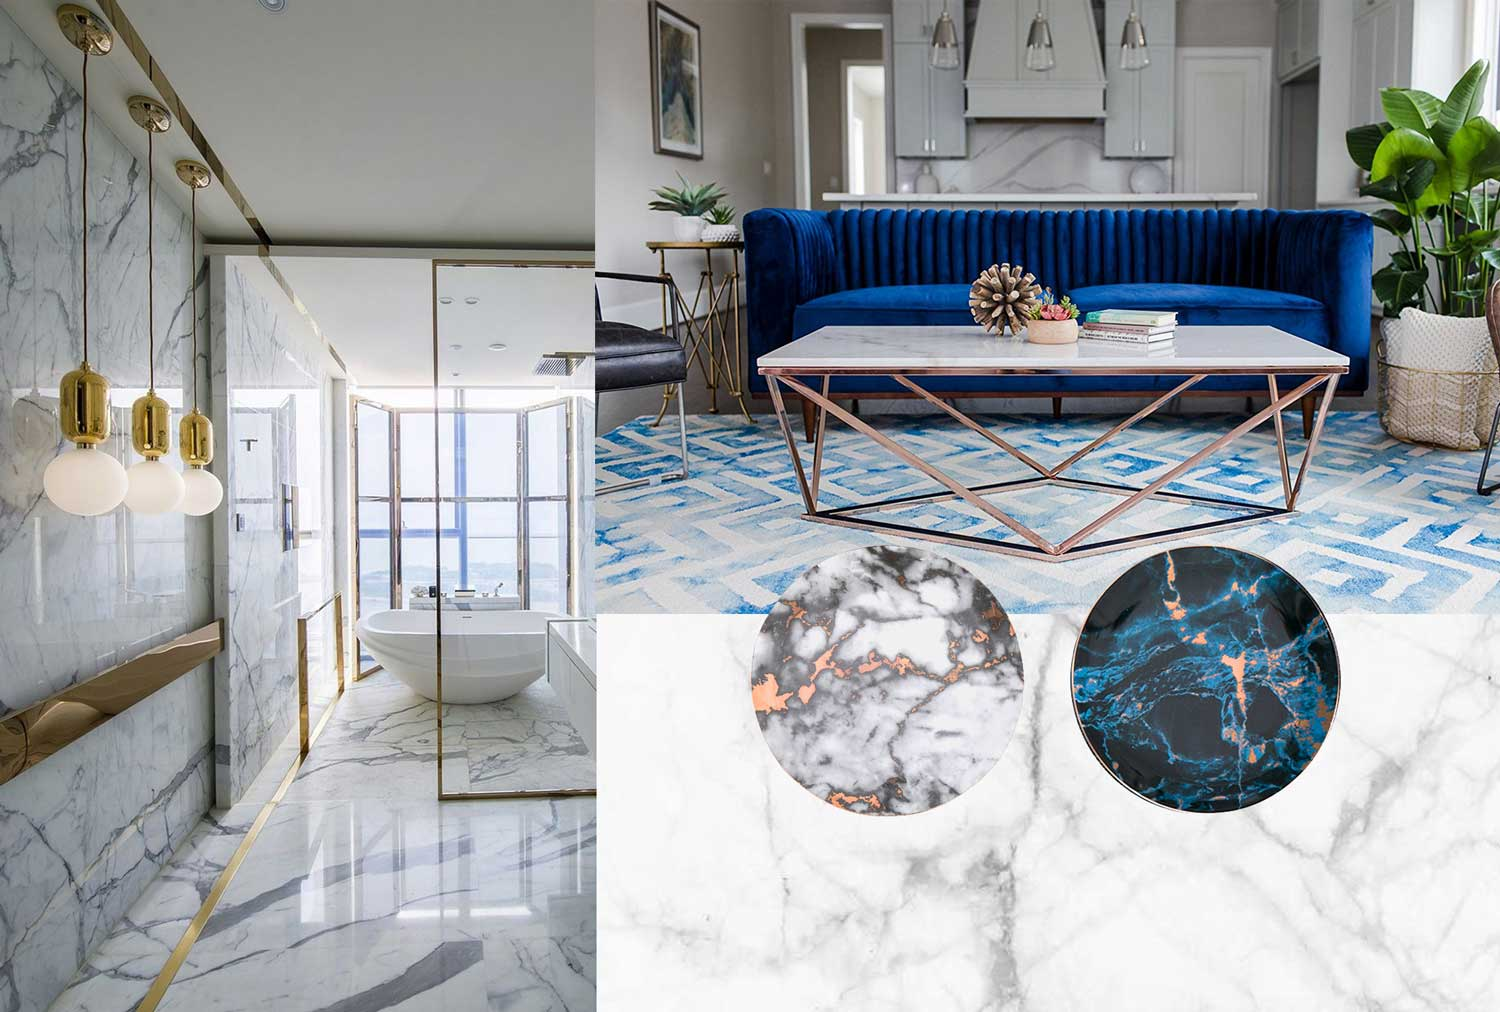 Marble Home Decor: 15 Ways To Incorporate Marble Into Your Home